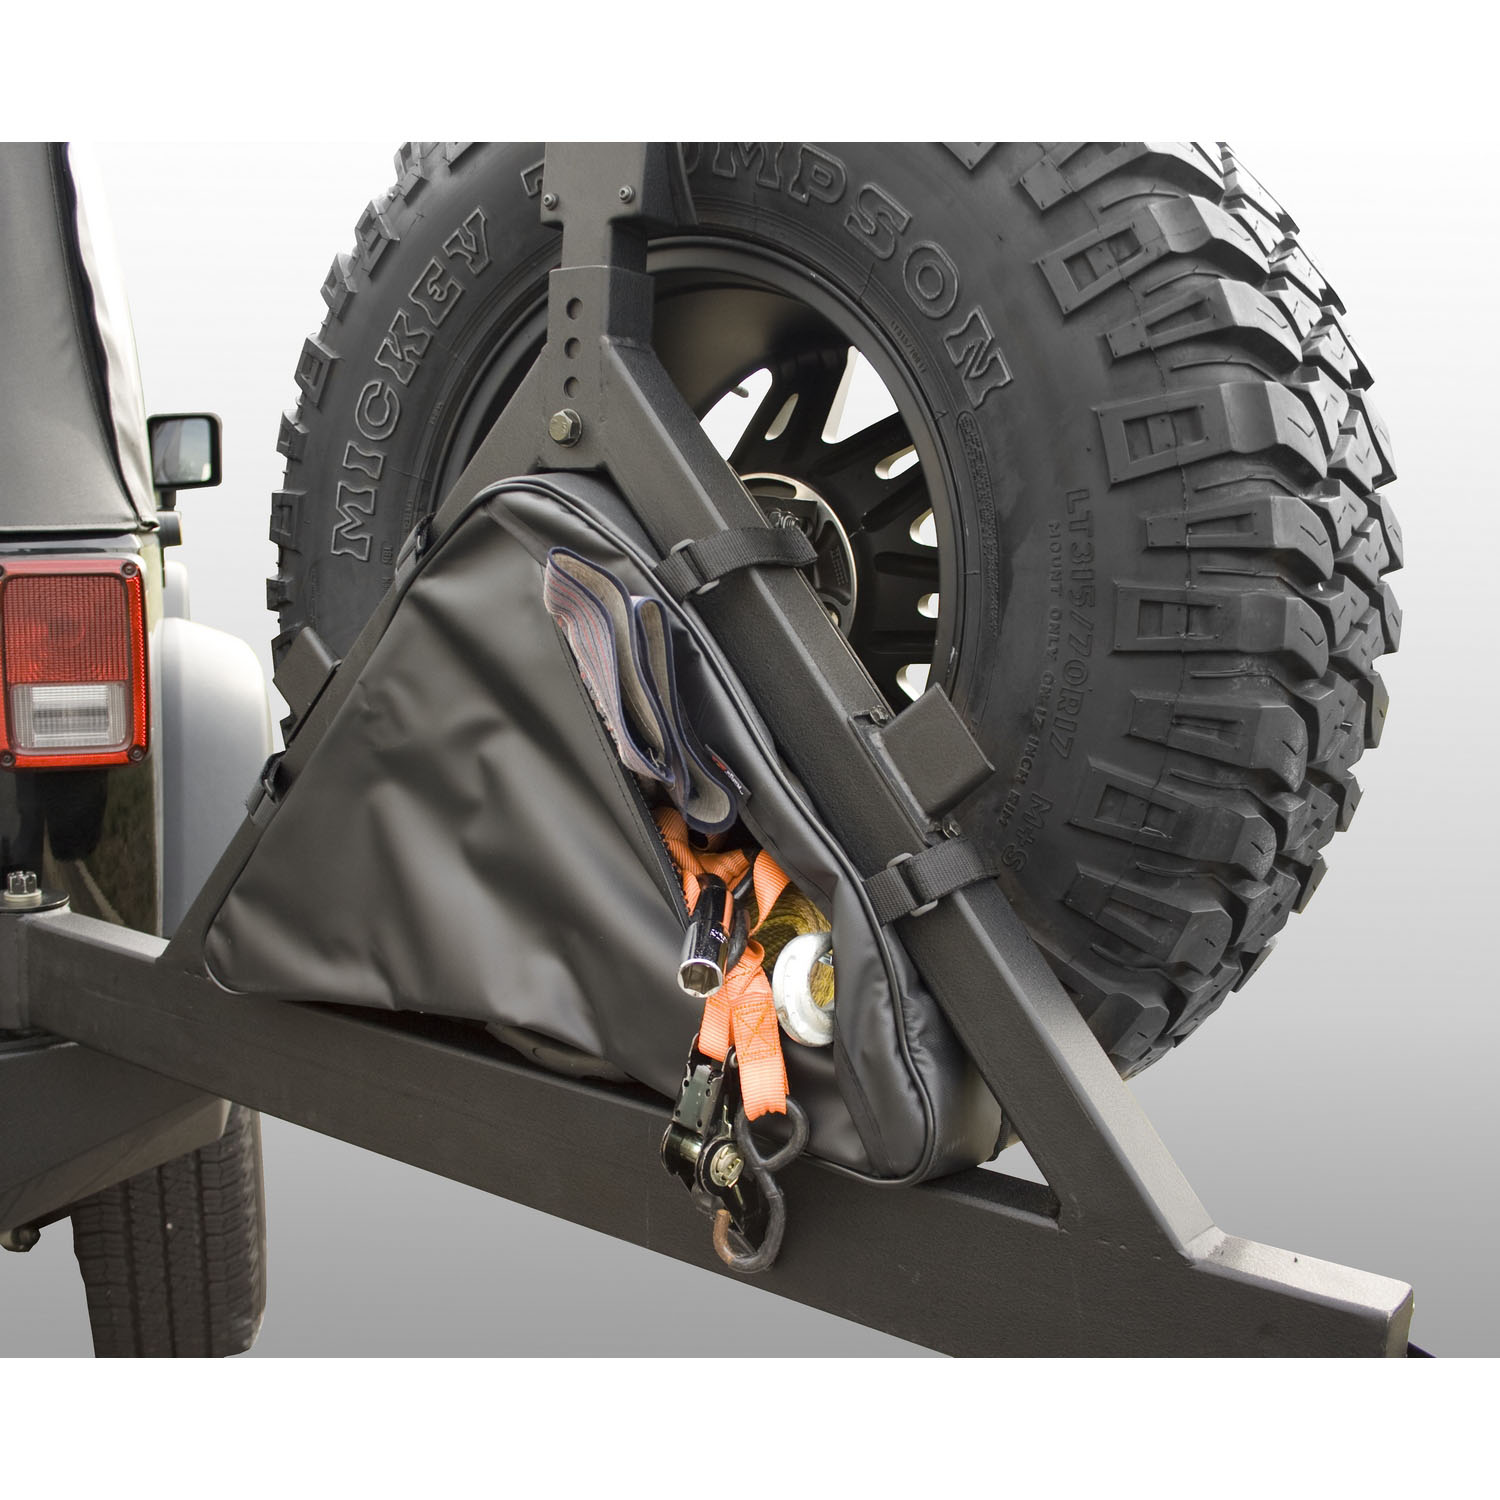 Triangular Storage Bag for Rugged Ridge Tire Carriers